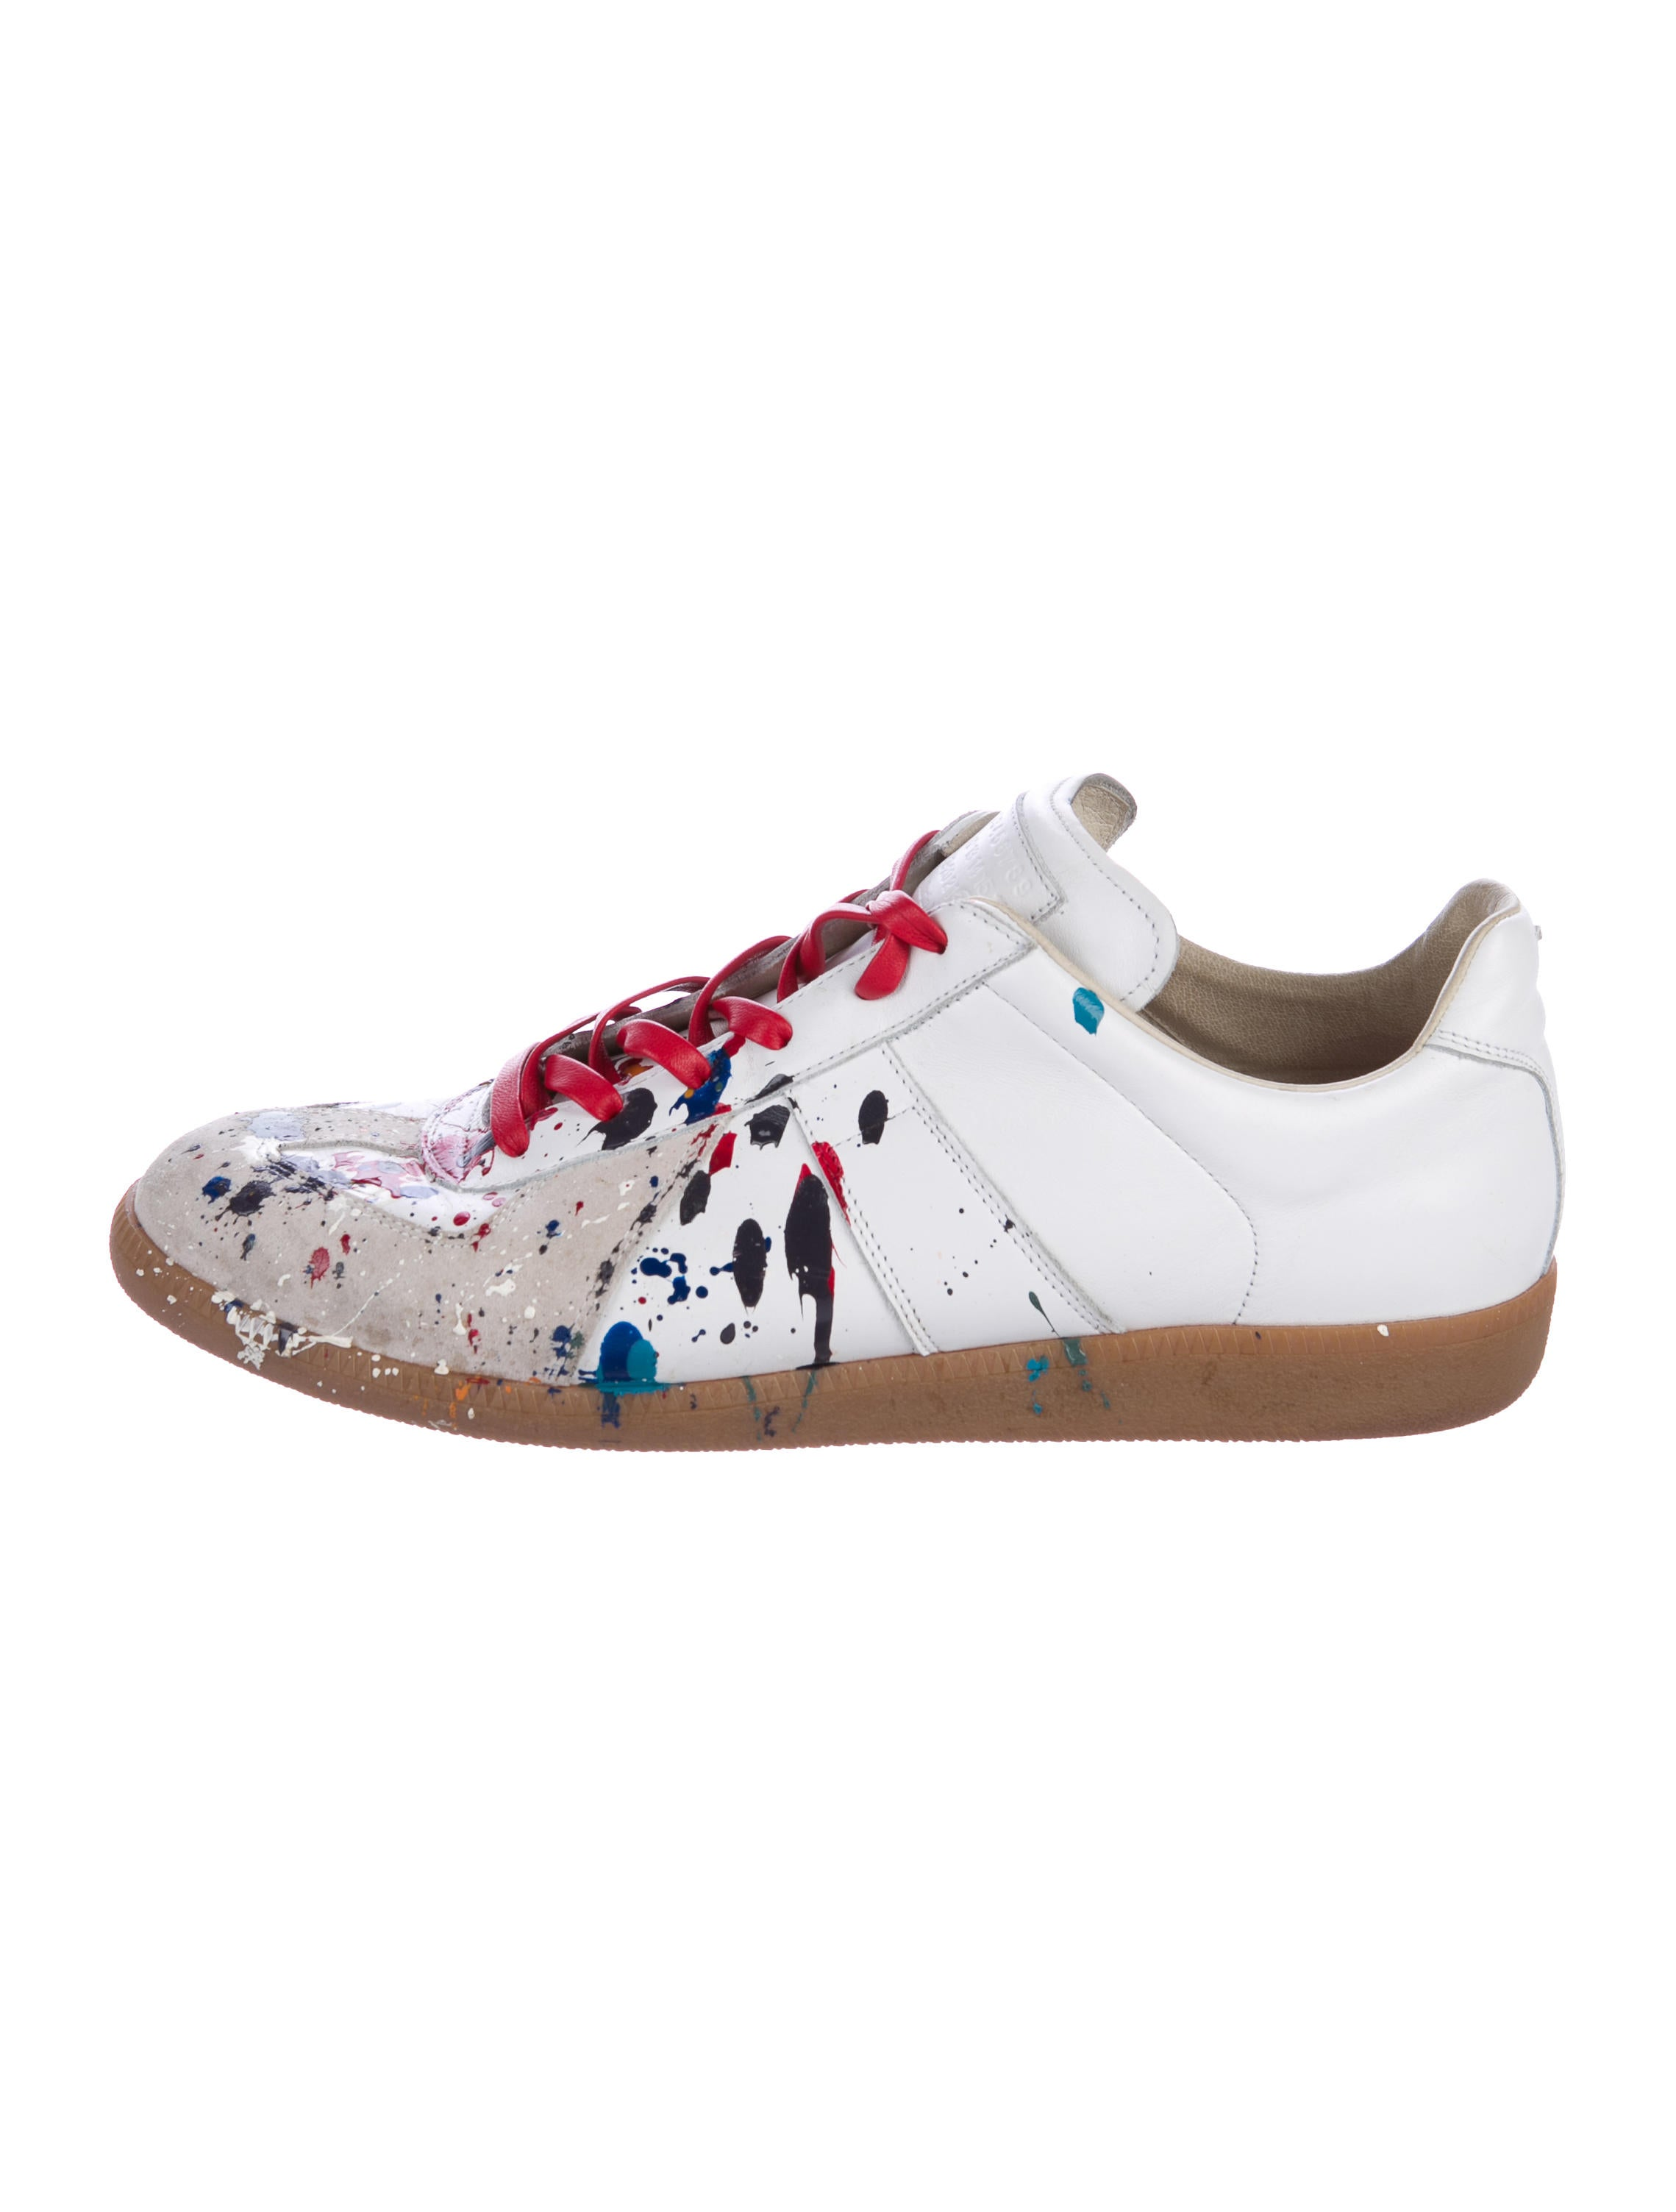 maison margiela replica paint splatter sneakers shoes mai31478 the realreal. Black Bedroom Furniture Sets. Home Design Ideas